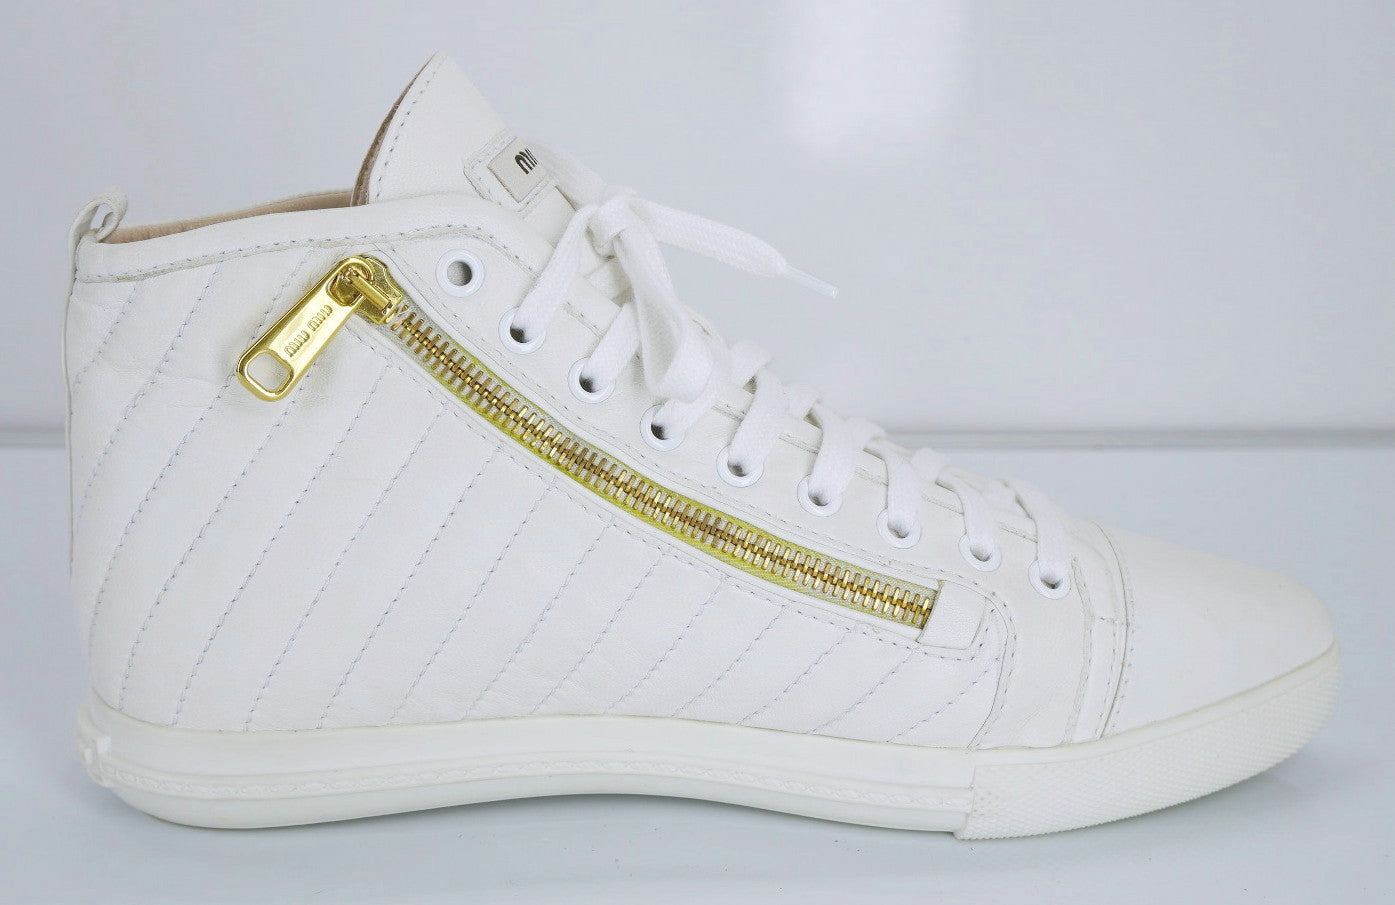 Miu Miu White Leather High Top Zipper Sneakers Size 38.5 New $650